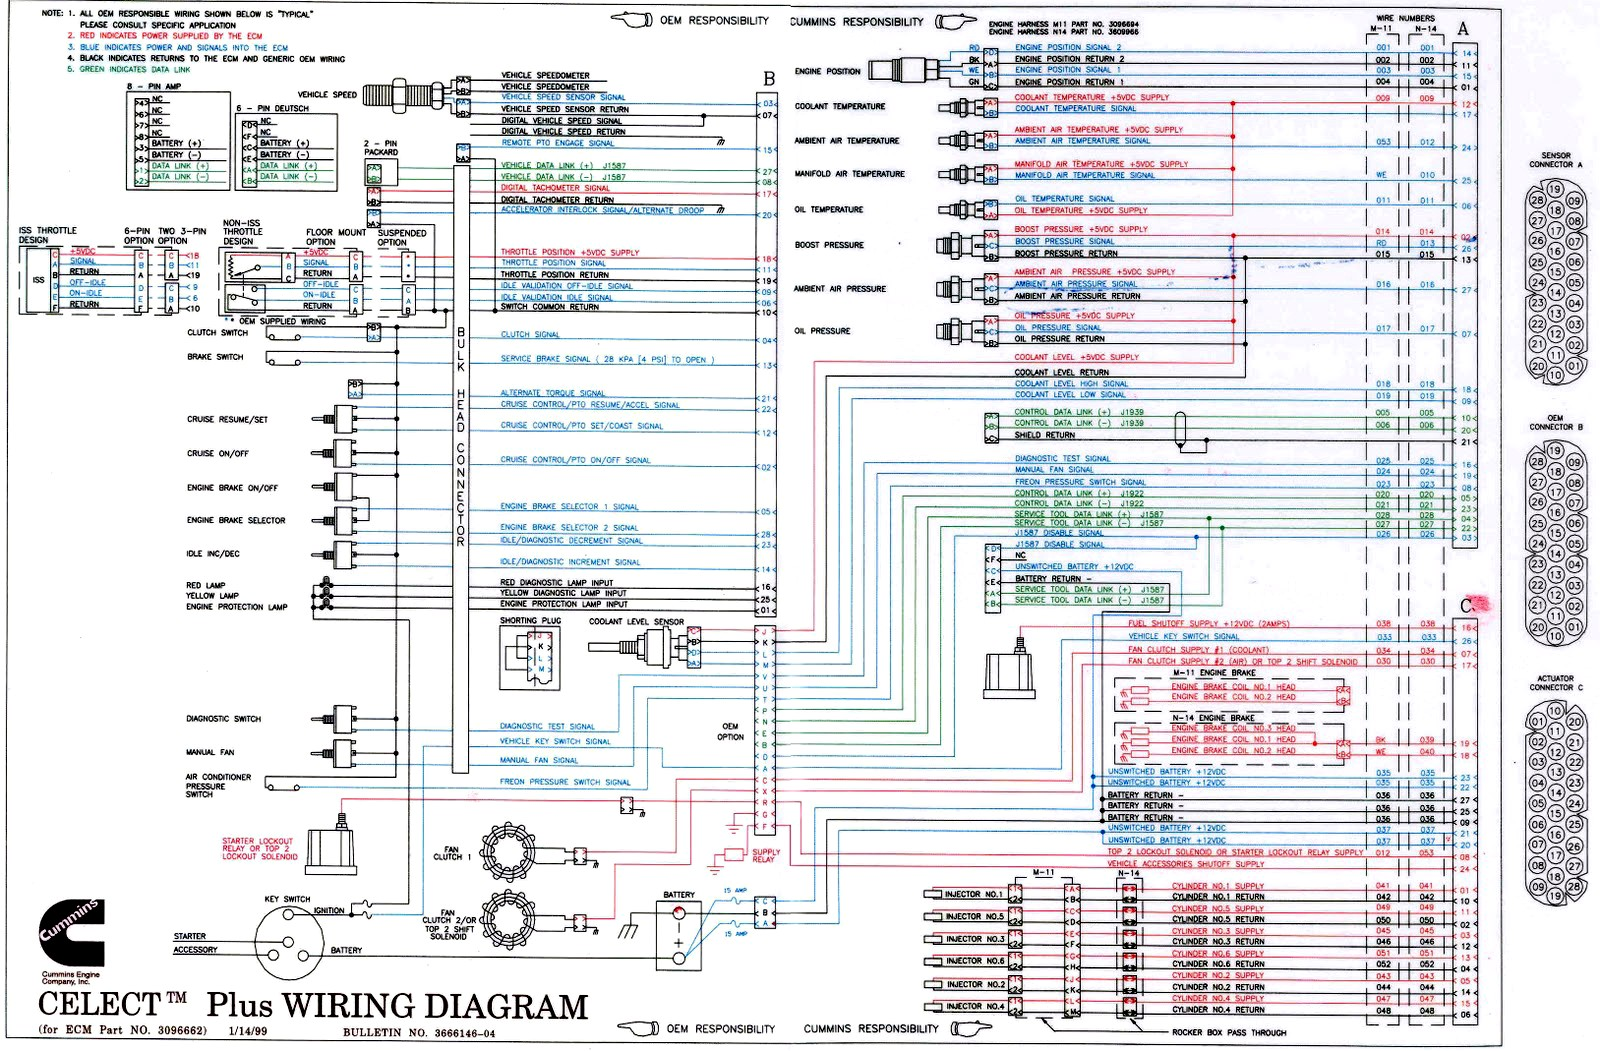 Celect+Plus+Wiring+Diagram+Cummins celect plus wiring diagram cummins ~ servicio diesel americano signature isx wiring diagram at mifinder.co